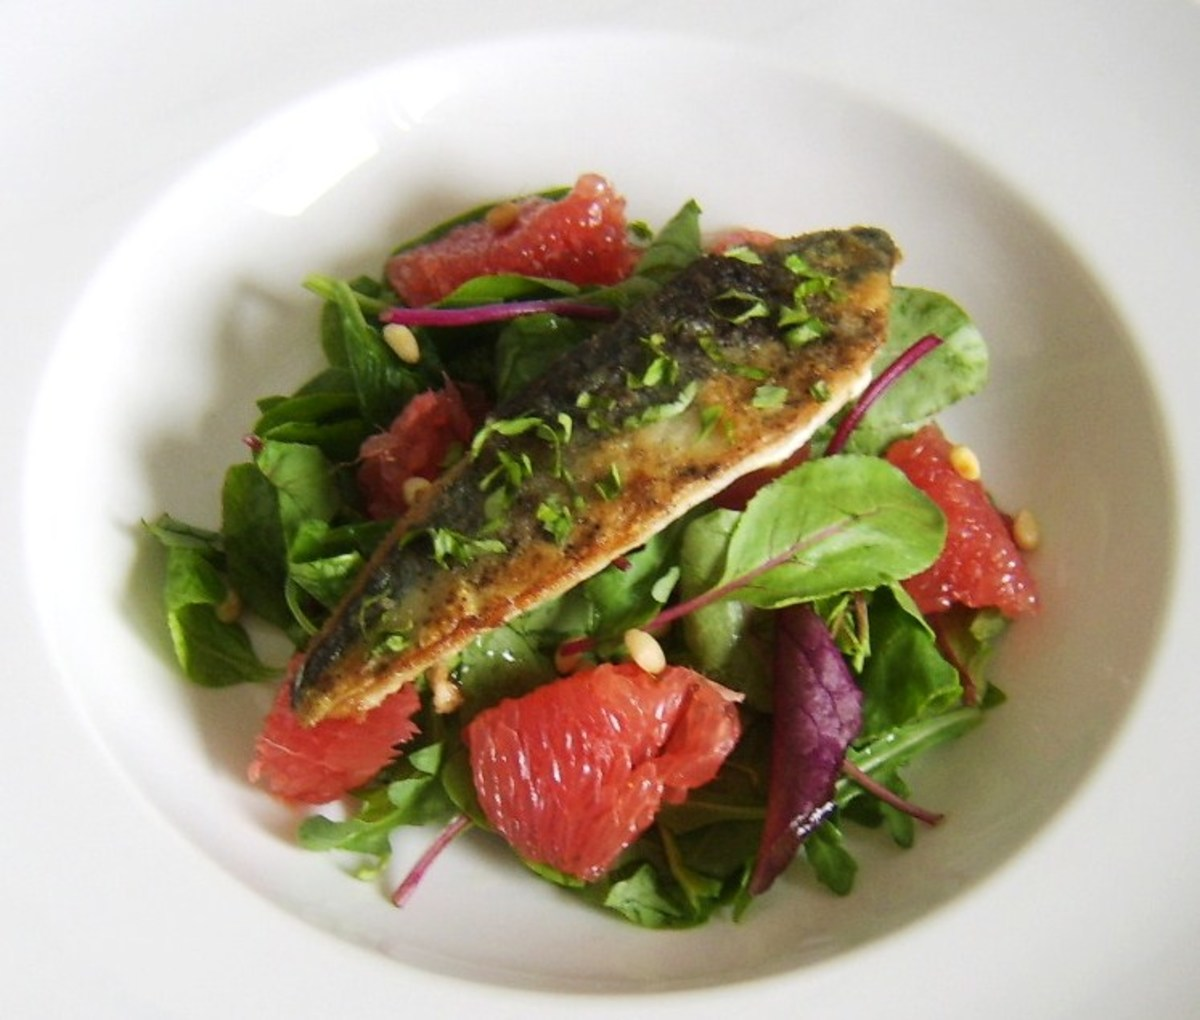 A simply and quickly pan fried mackerel fillet is served on a bed of mixed green salad leaves, red grapefruit and toasted pine nuts